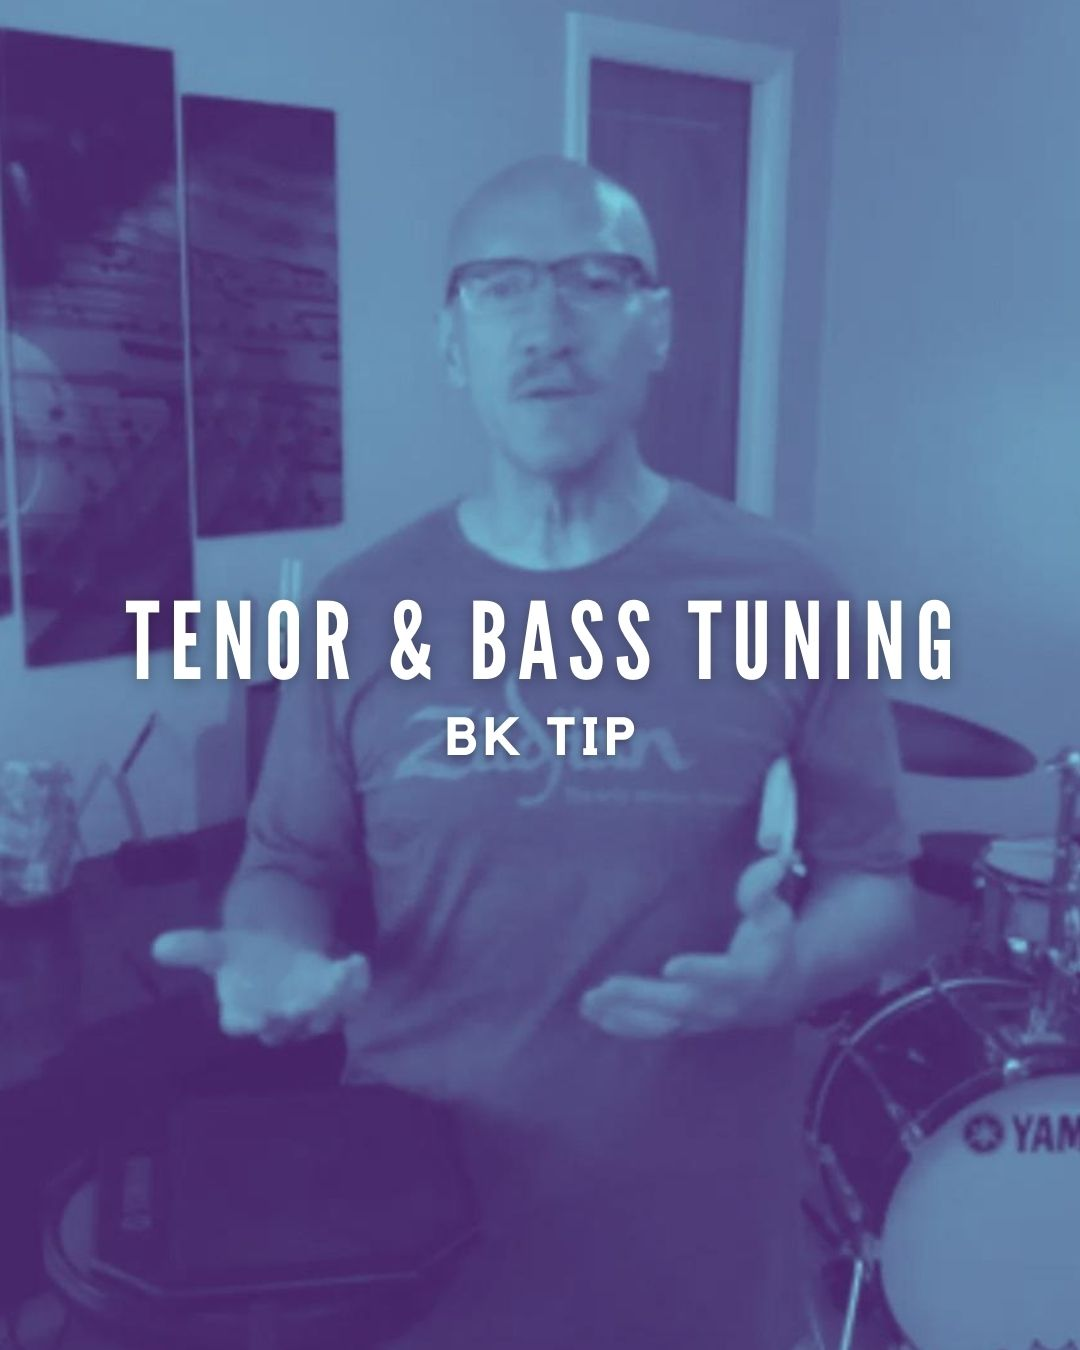 Tenor & Bass Tuning